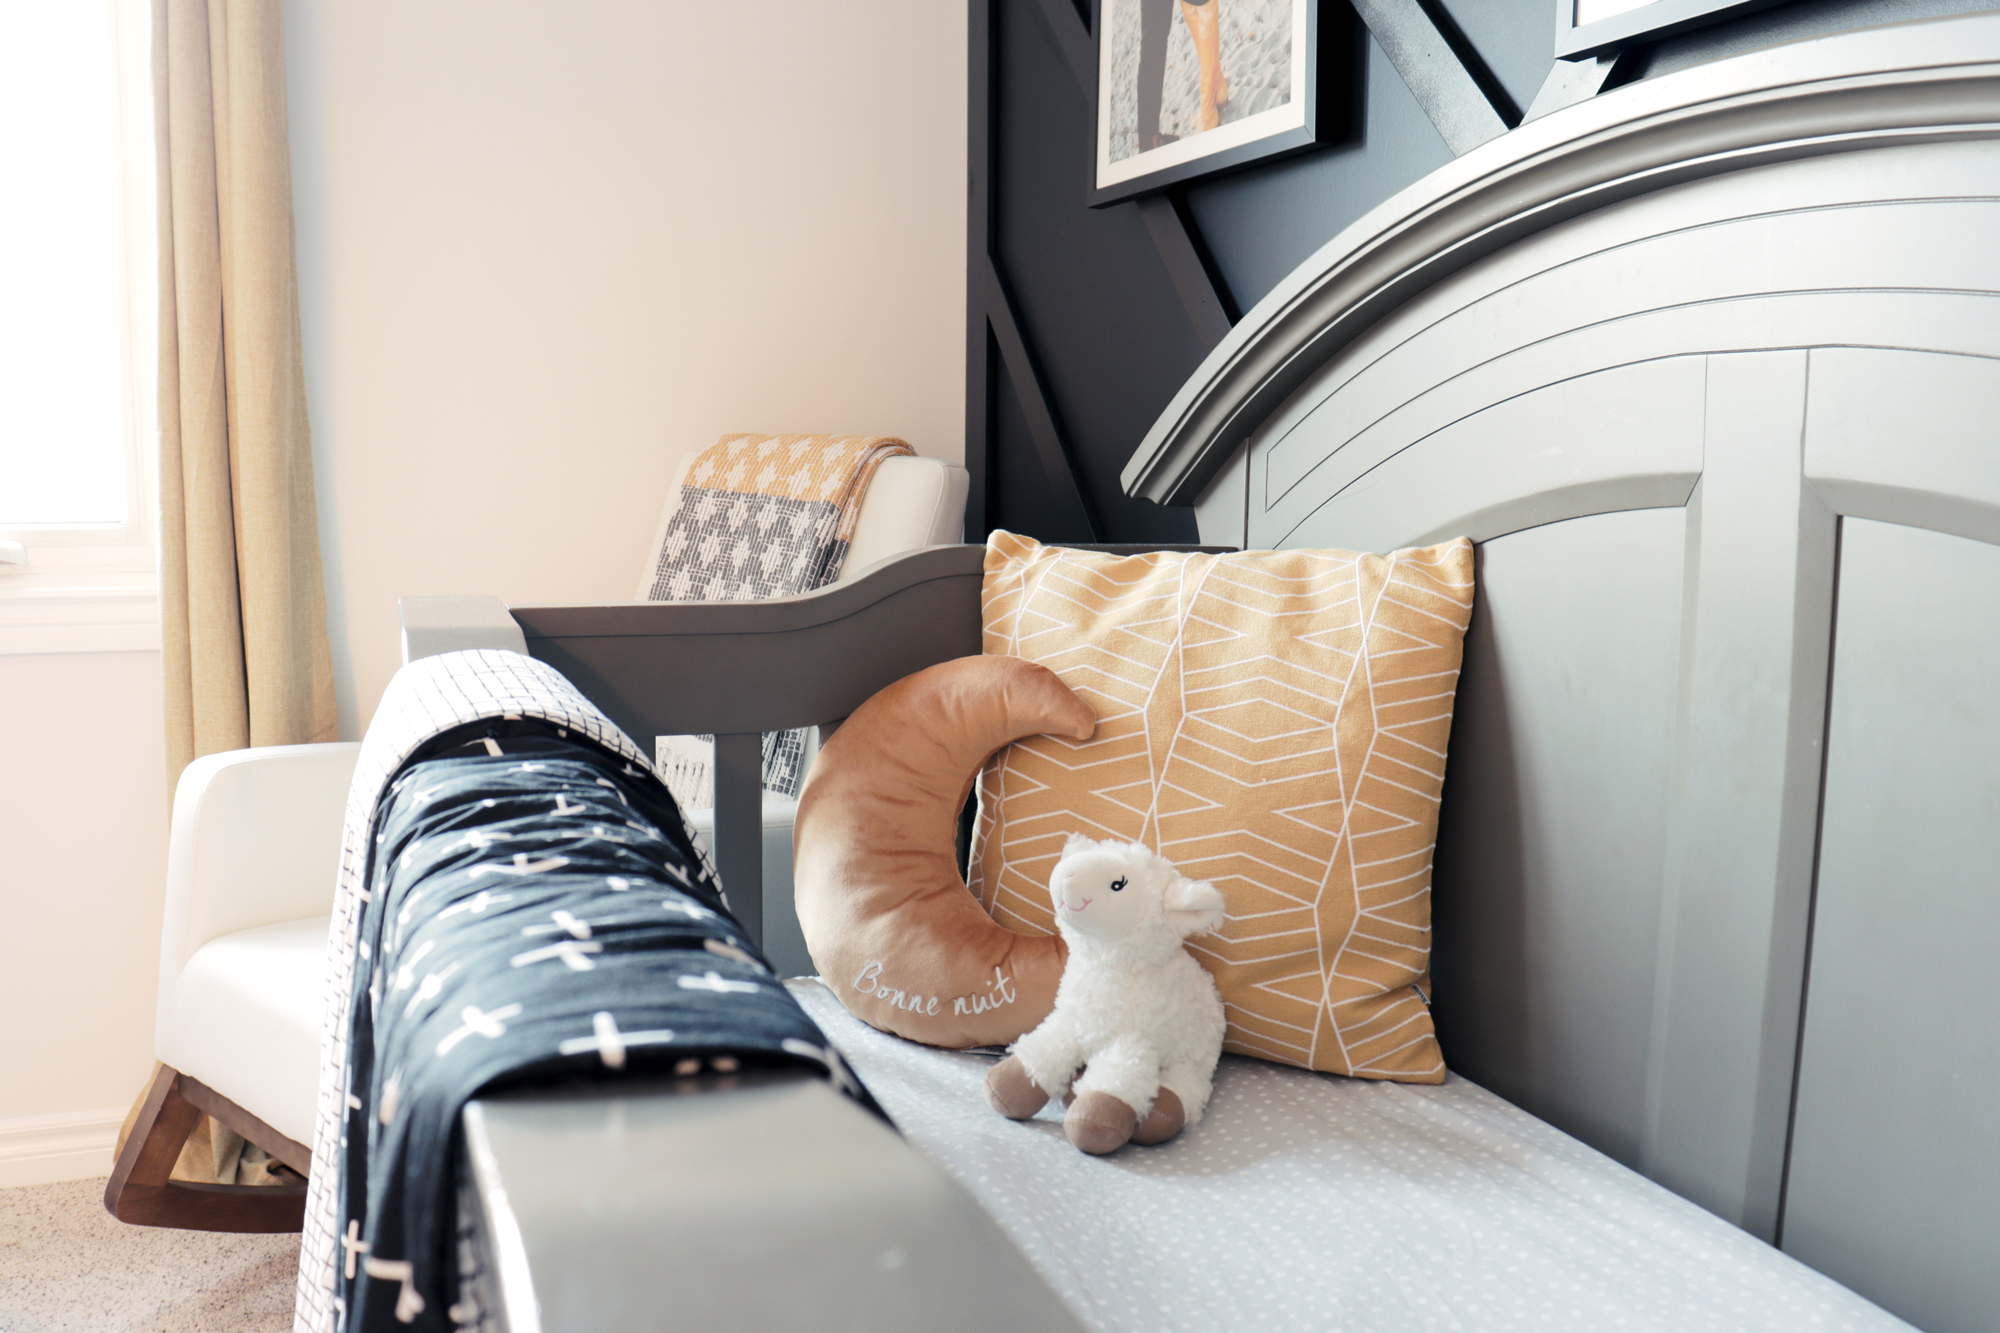 Geometric prints in the bedding and decor accents carry the theme and colour palette throughout the nursery design.